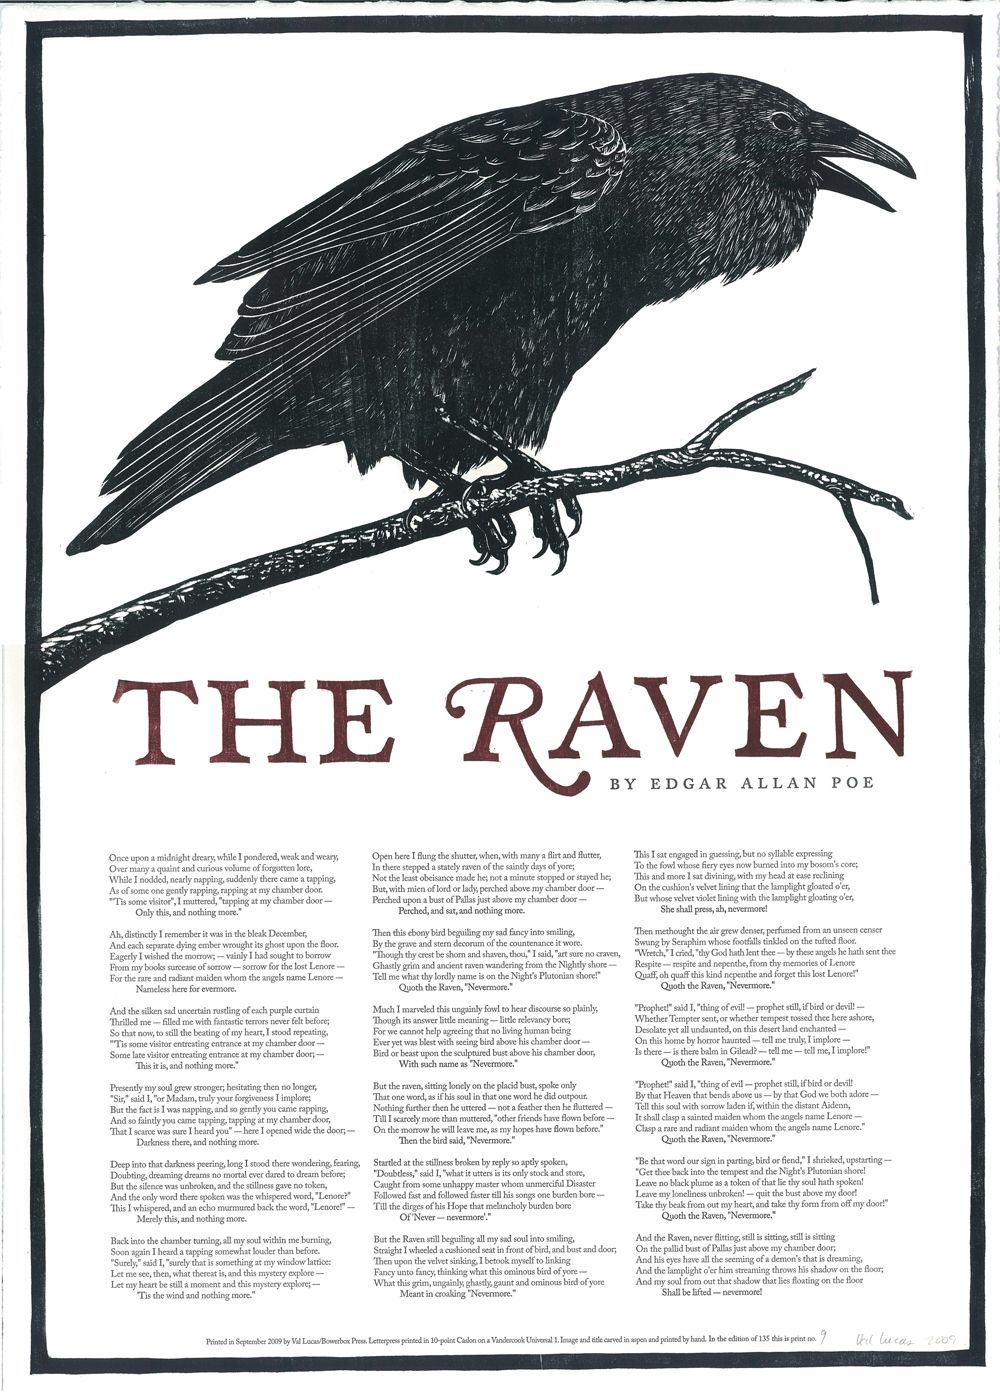 raven drawings universal 1 the entire text of the poem the 1845 the raven is published edgar allan poe s famous poem the raven beginning once upon a midnight dreary is published on this day in the